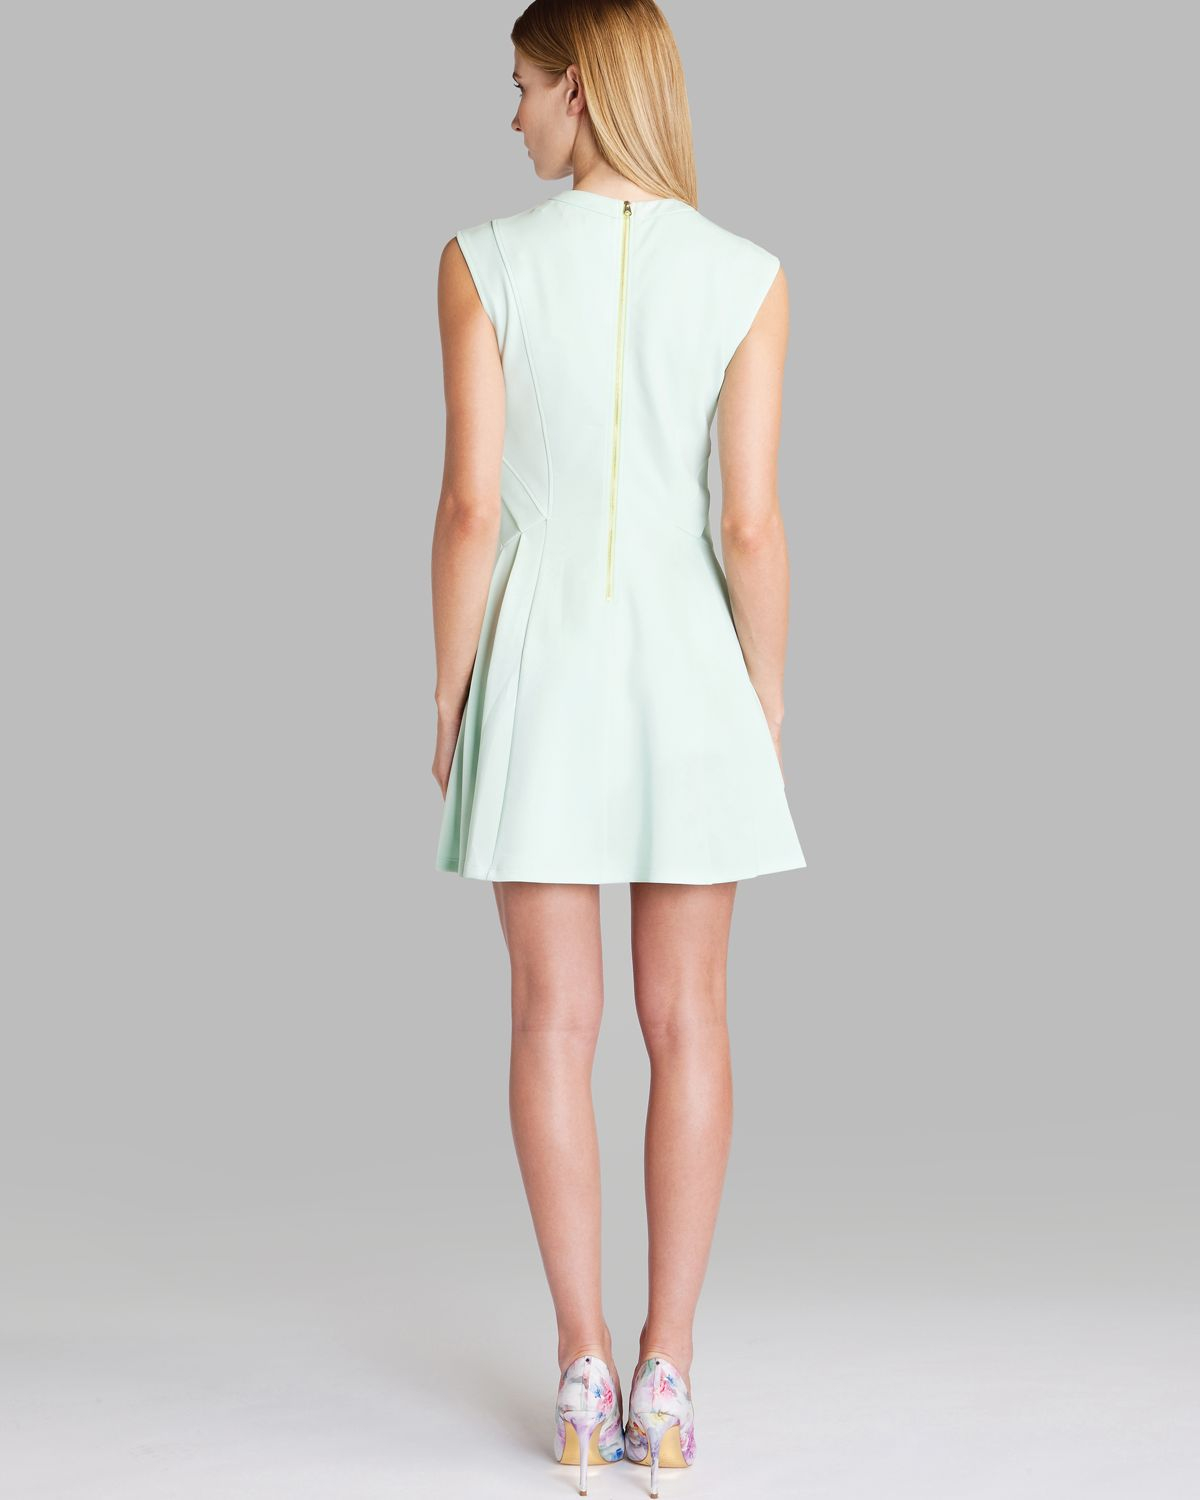 d29a903c8af829 Ted Baker Nistee Skater Dress ( Size 3- 8 US)